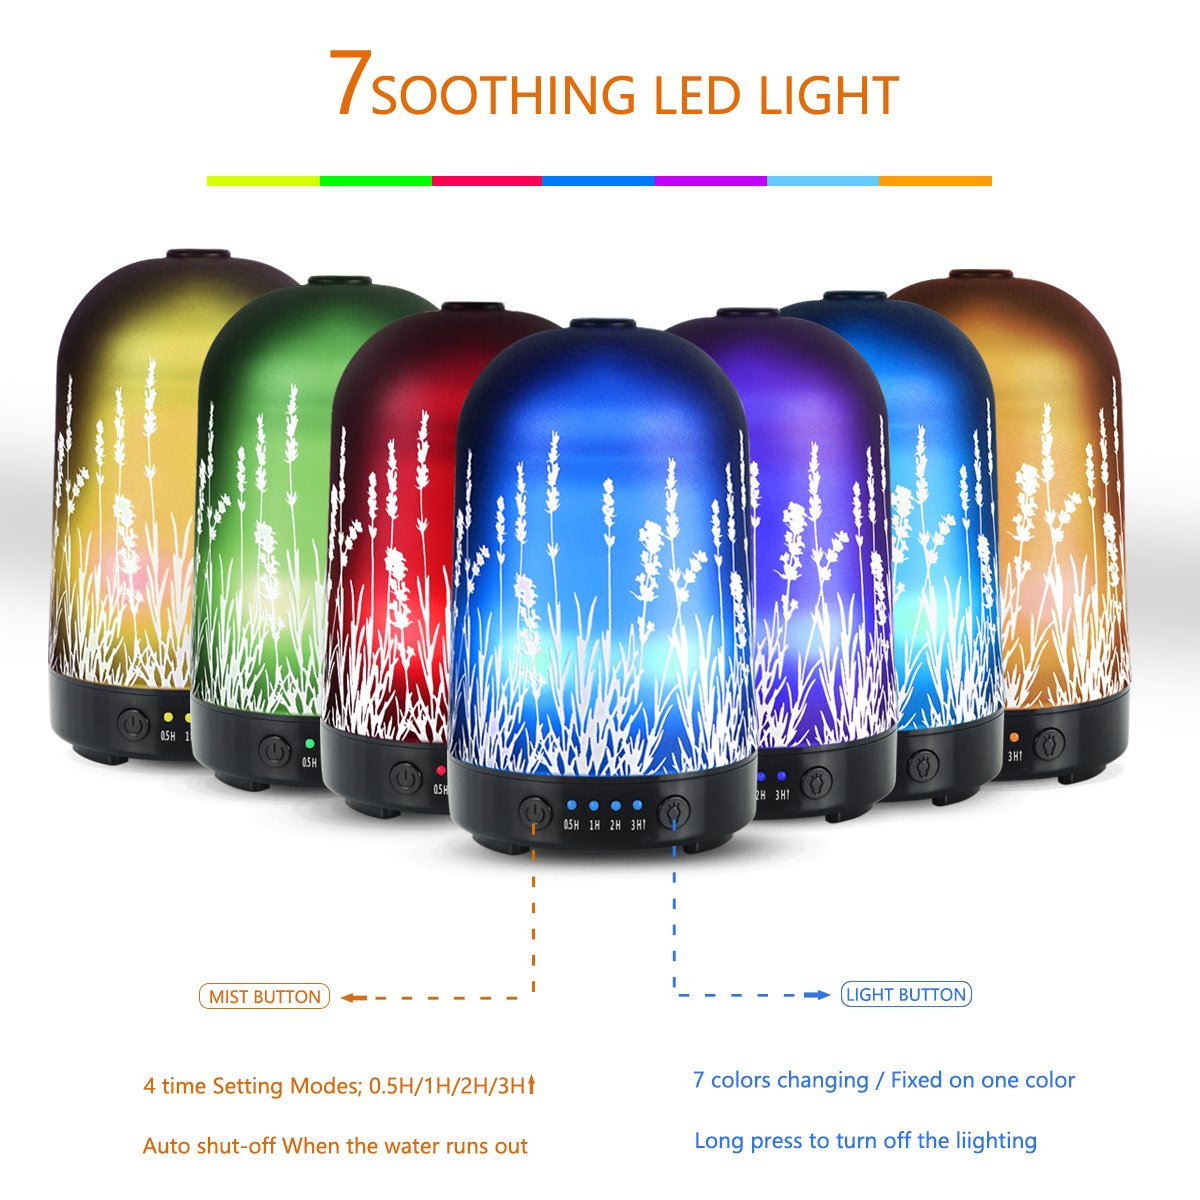 Aromatherapy Essential Oil Diffuser 100ml Glass Fragrance Lavender Cold Mist Humidifier Waterless Automatic Shutdown 7 Colour LED Lights 4 Timed Settings For Home Office Yoga Spa ?- ¡ by PUSEAYZ (Image #3)